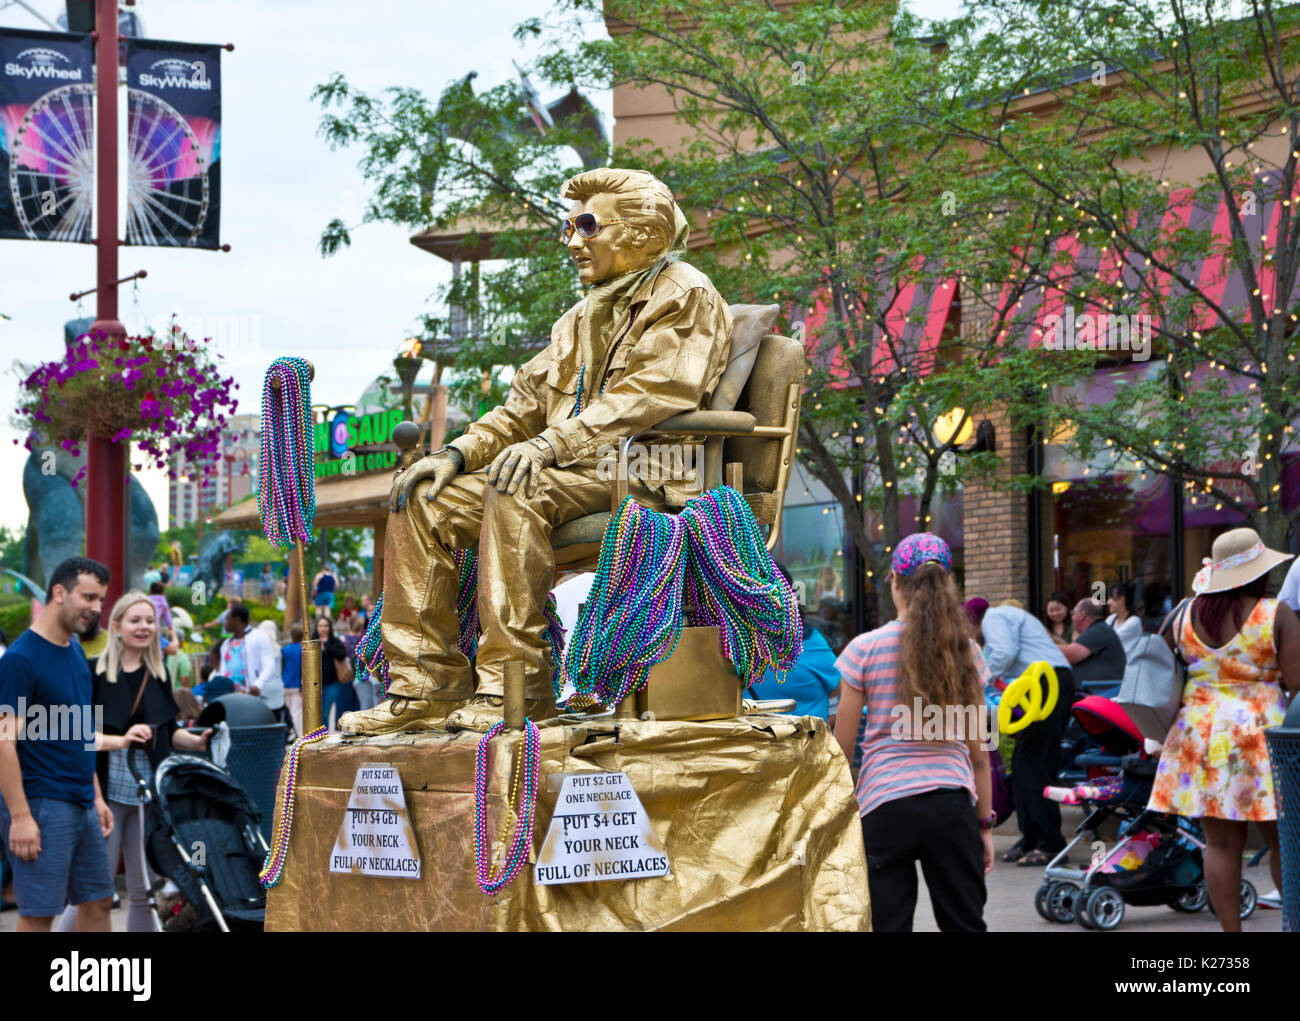 'Gold Elvis' on Clifton Hill in Niagara Falls, Ontario, Canada. - Stock Image